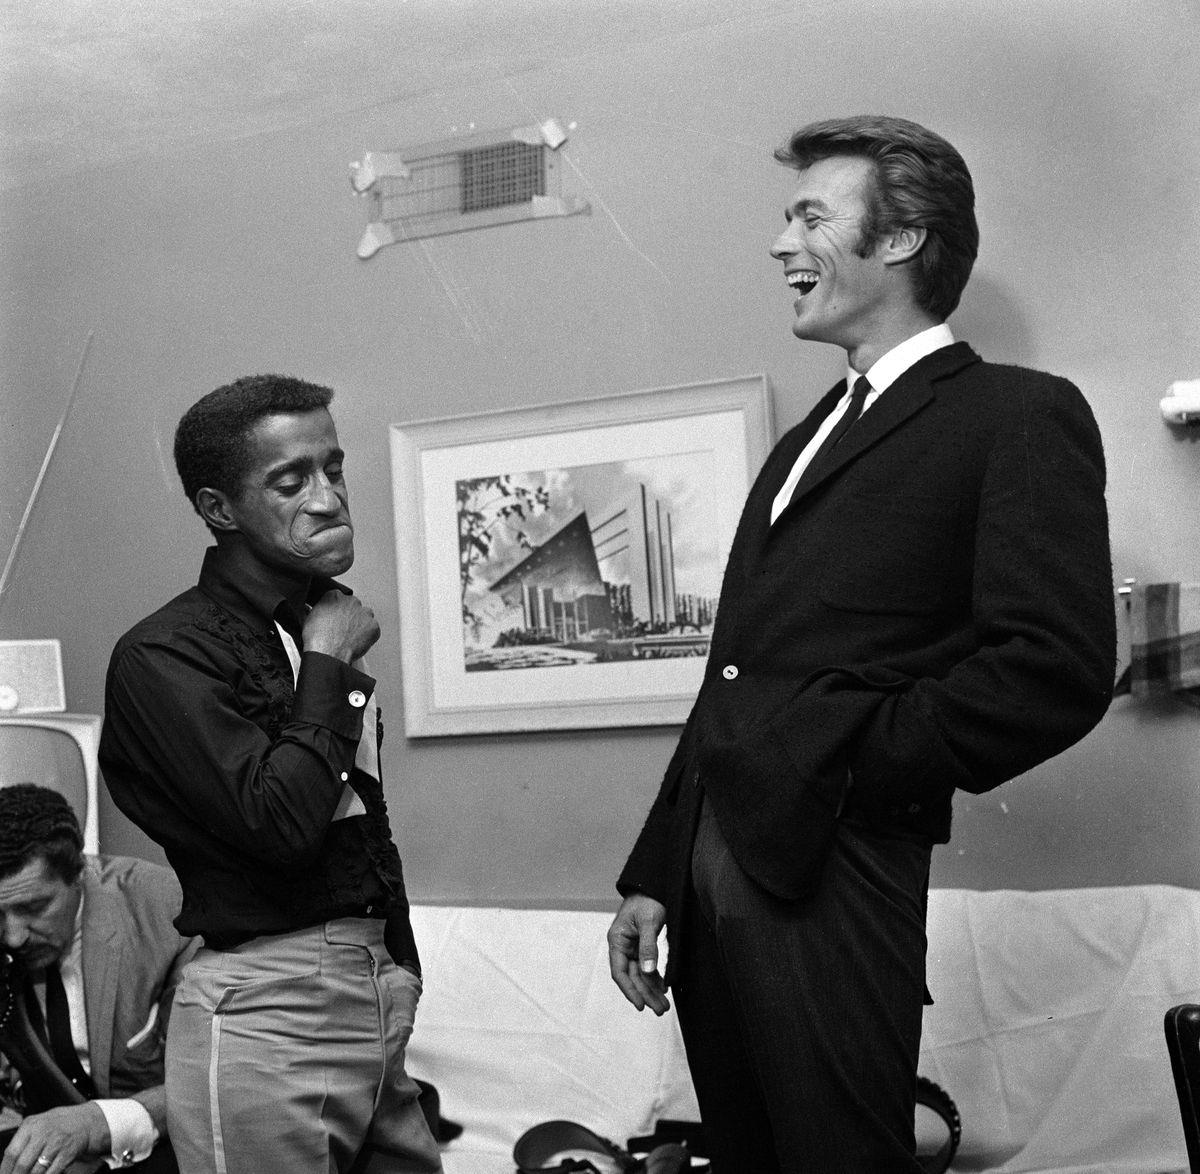 Slide 28 of 50: Sammy Davis Jr. and Clint Eastwood at the Sands hotel in 1959. Davis was instrumental in bringing a change in racial policy at the Sands.